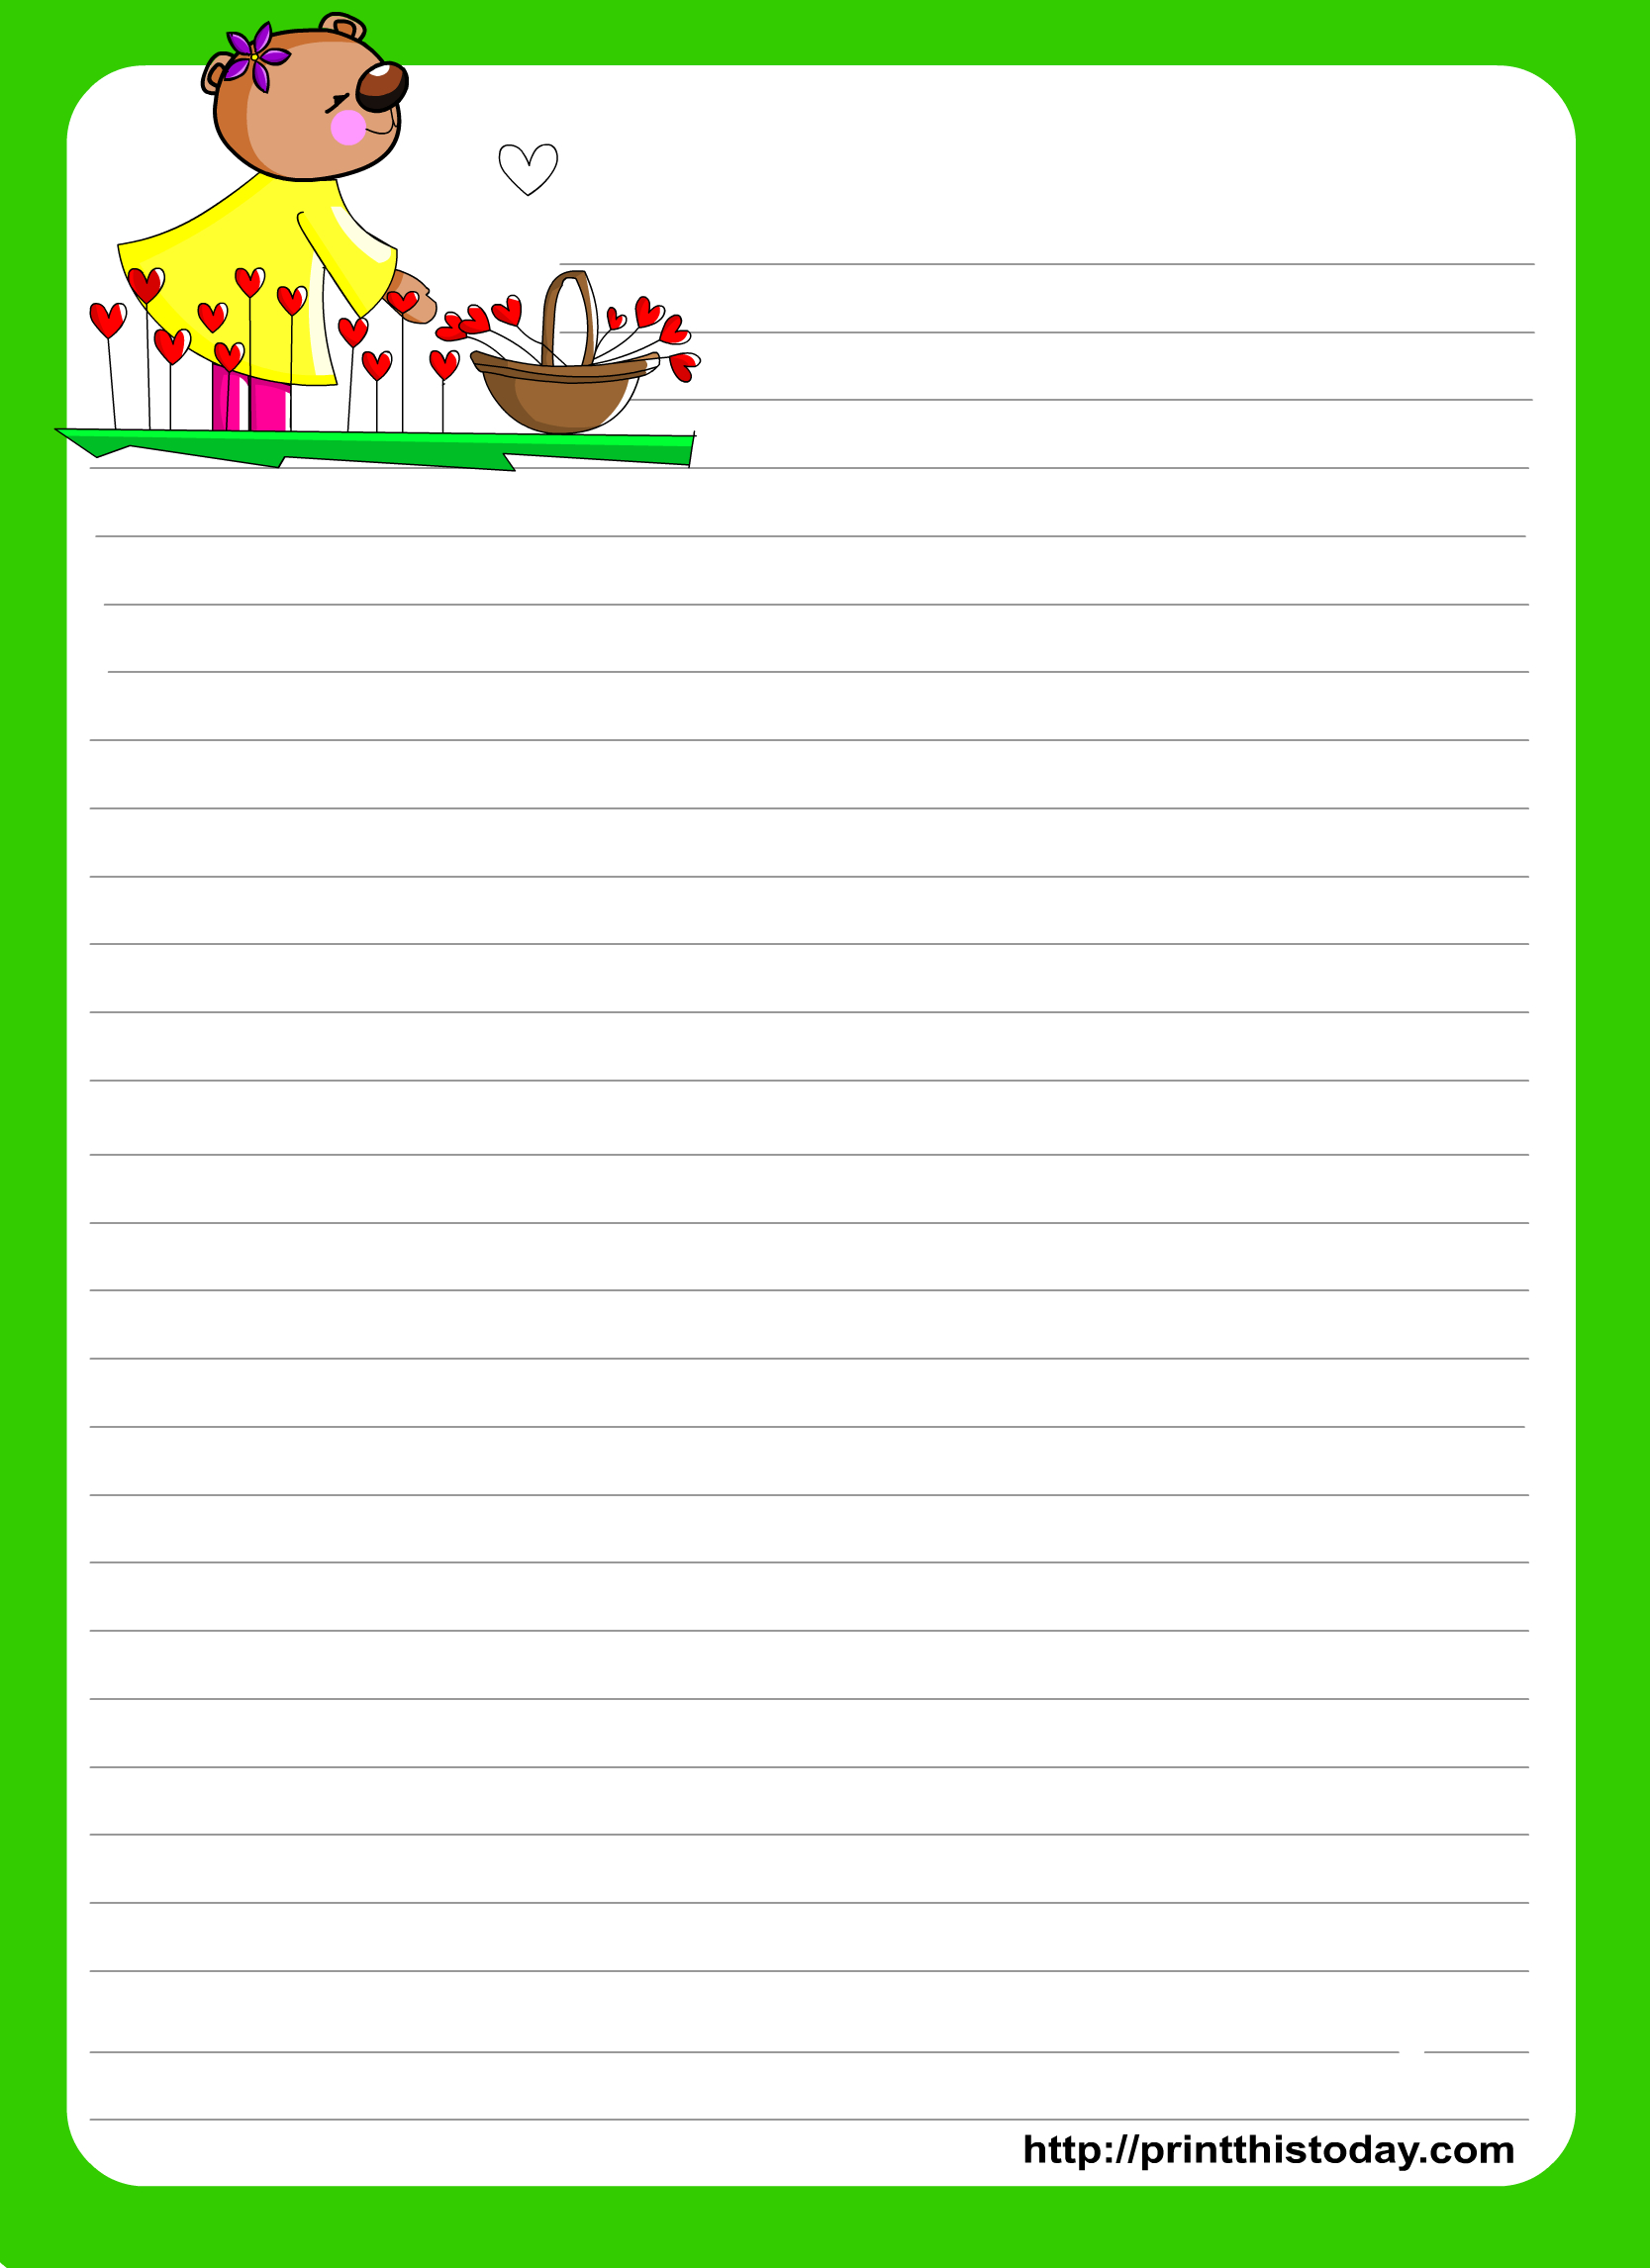 Love Letter Writing Paper - Free Printable Stationary Pdf